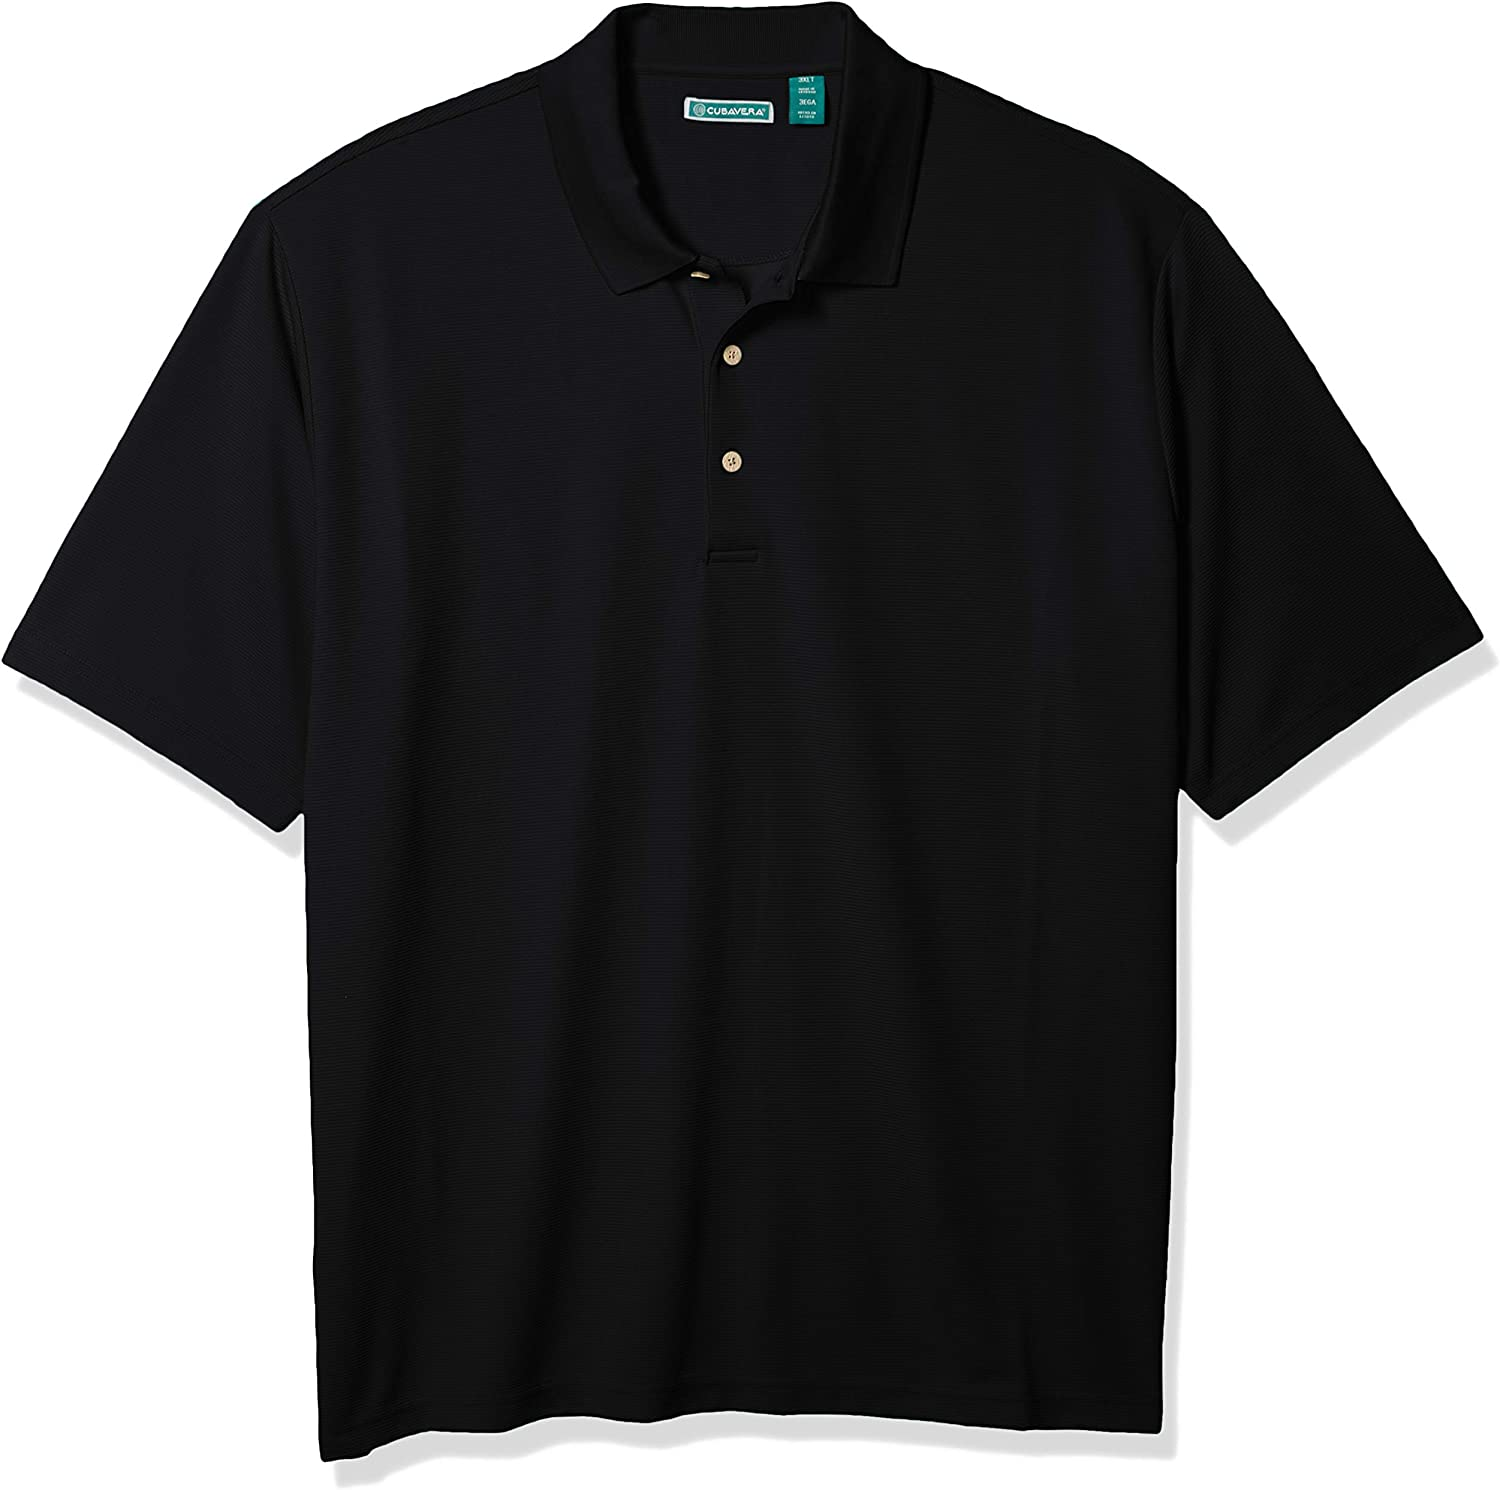 Cubavera Men's Big and Tall Essential Textured Performance Polo